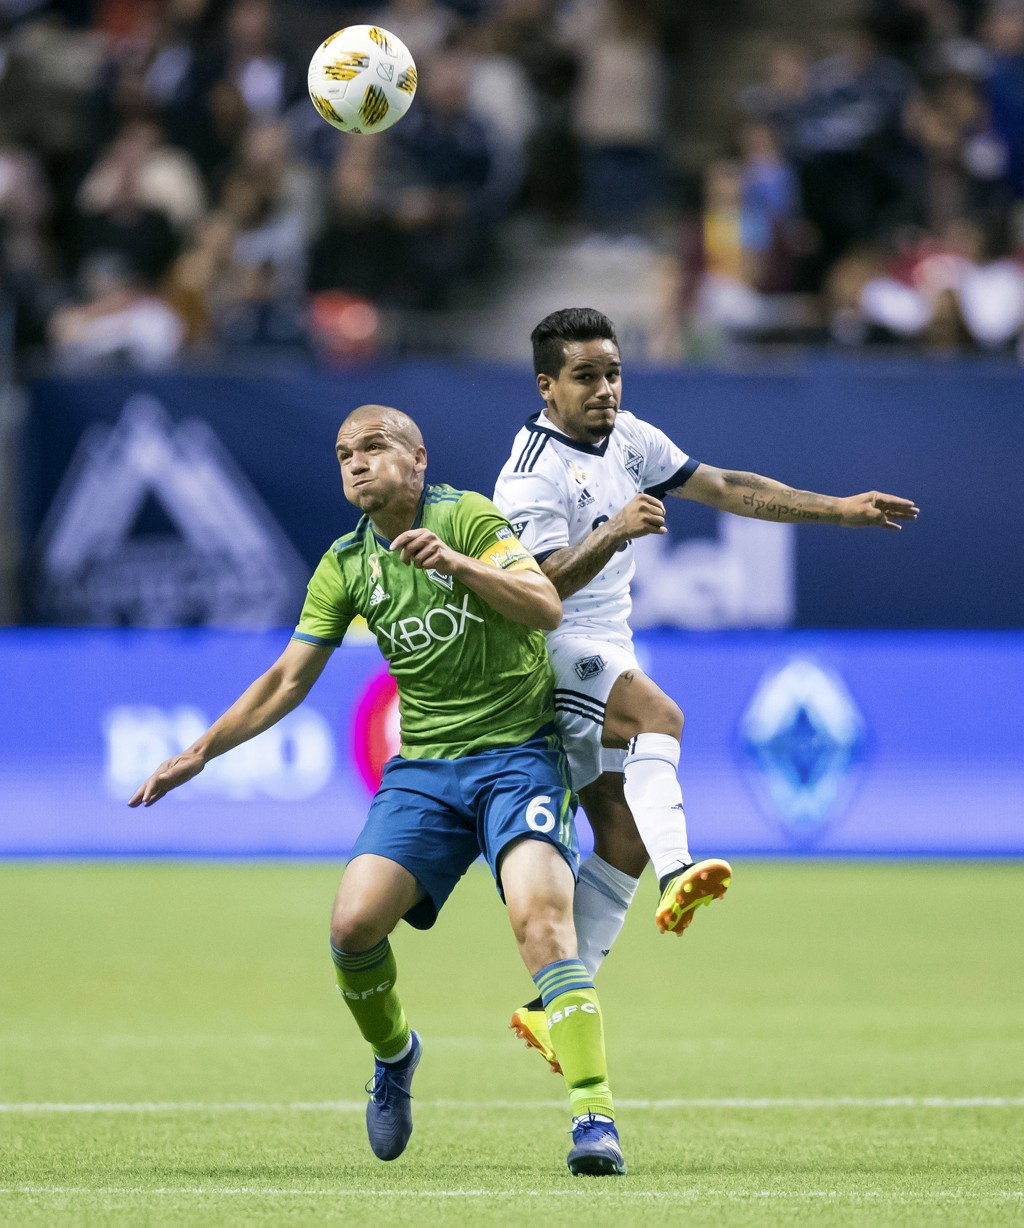 Seattle Sounders' Osvaldo Alonso, left, and Vancouver Whitecaps' Cristian Techera collide during the first half of an MLS soccer match, Saturday, Sept